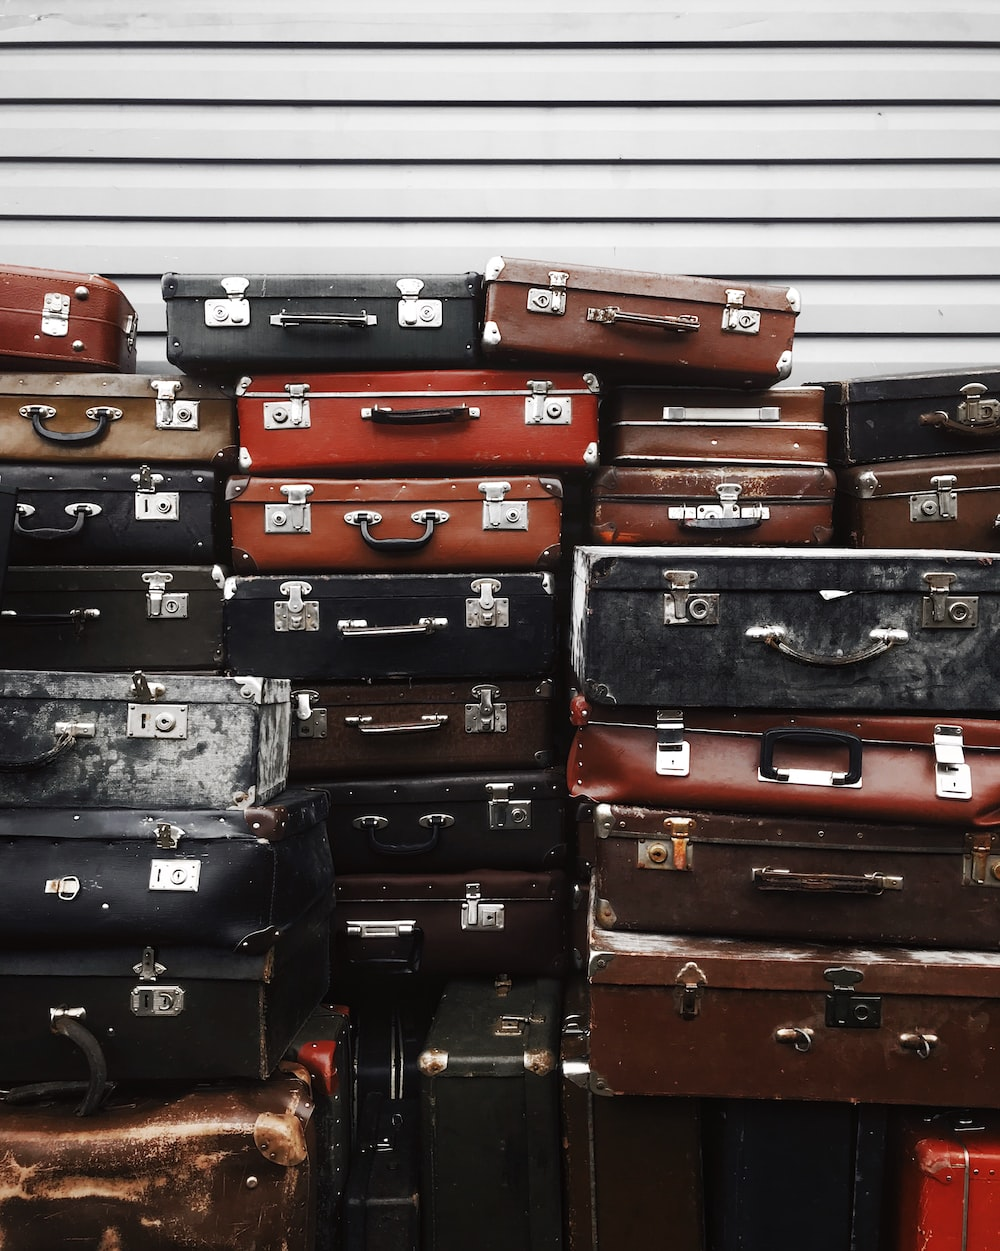 stacks of assorted suitcases